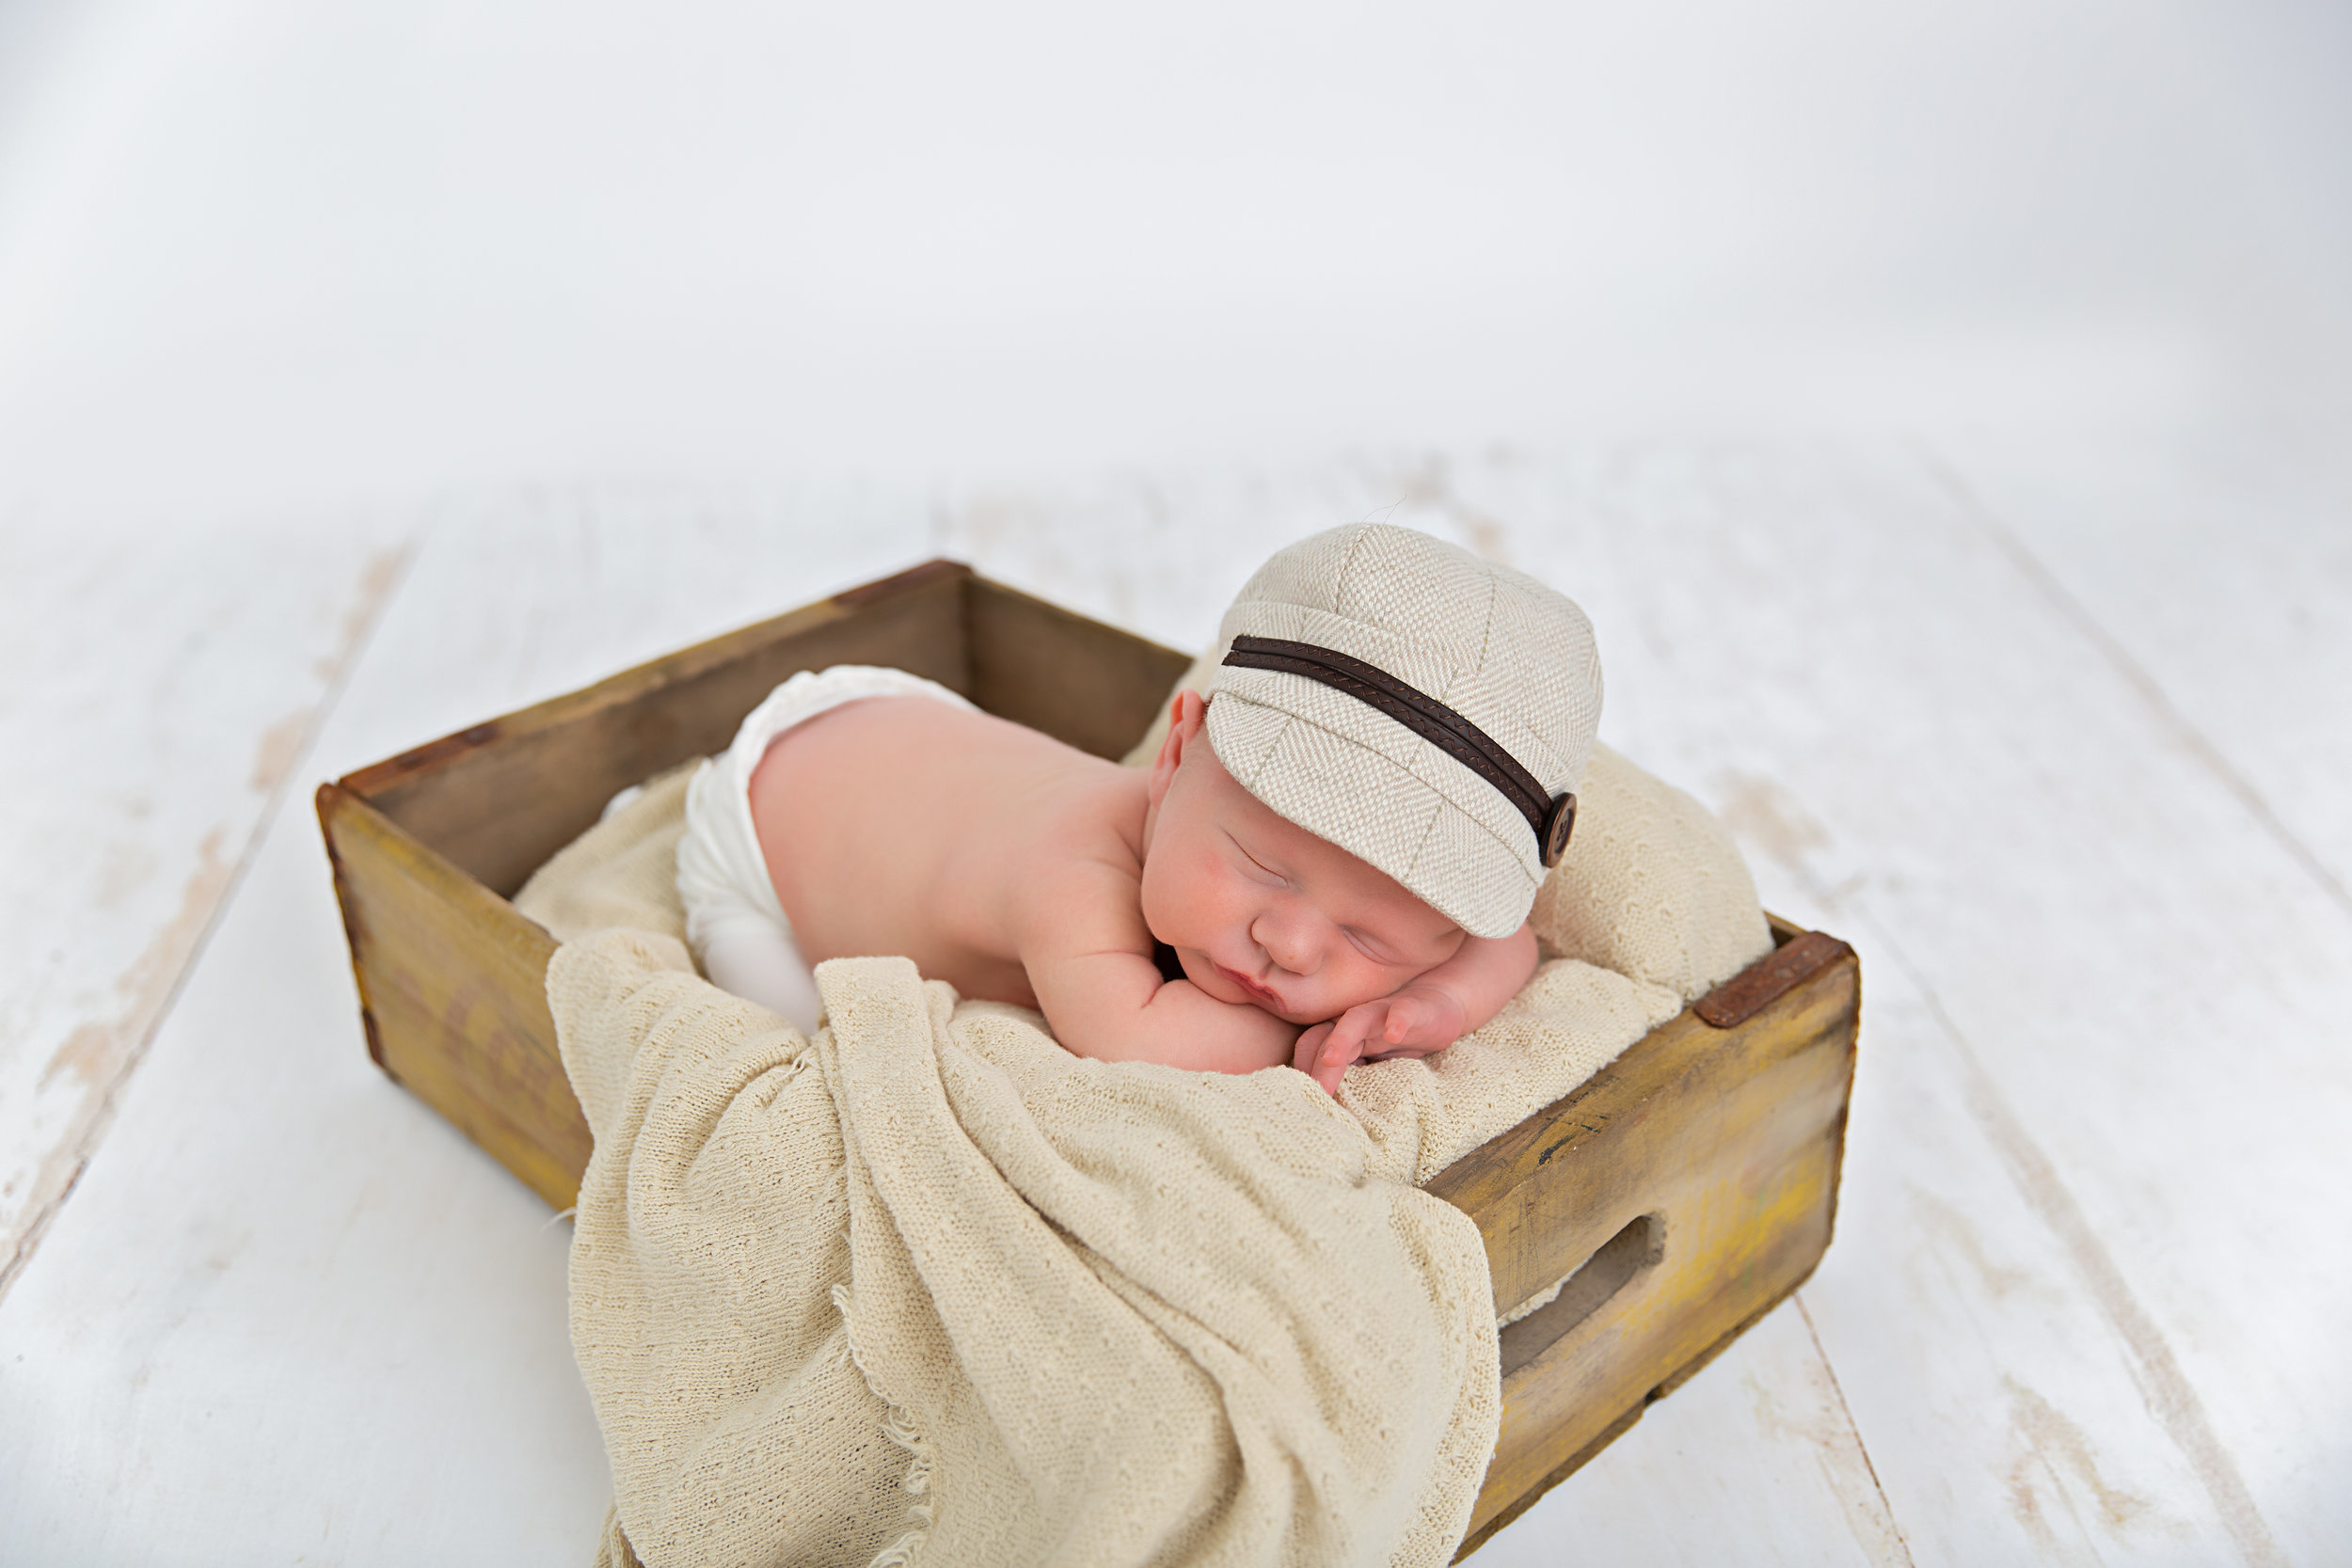 newborn baby posed in prop